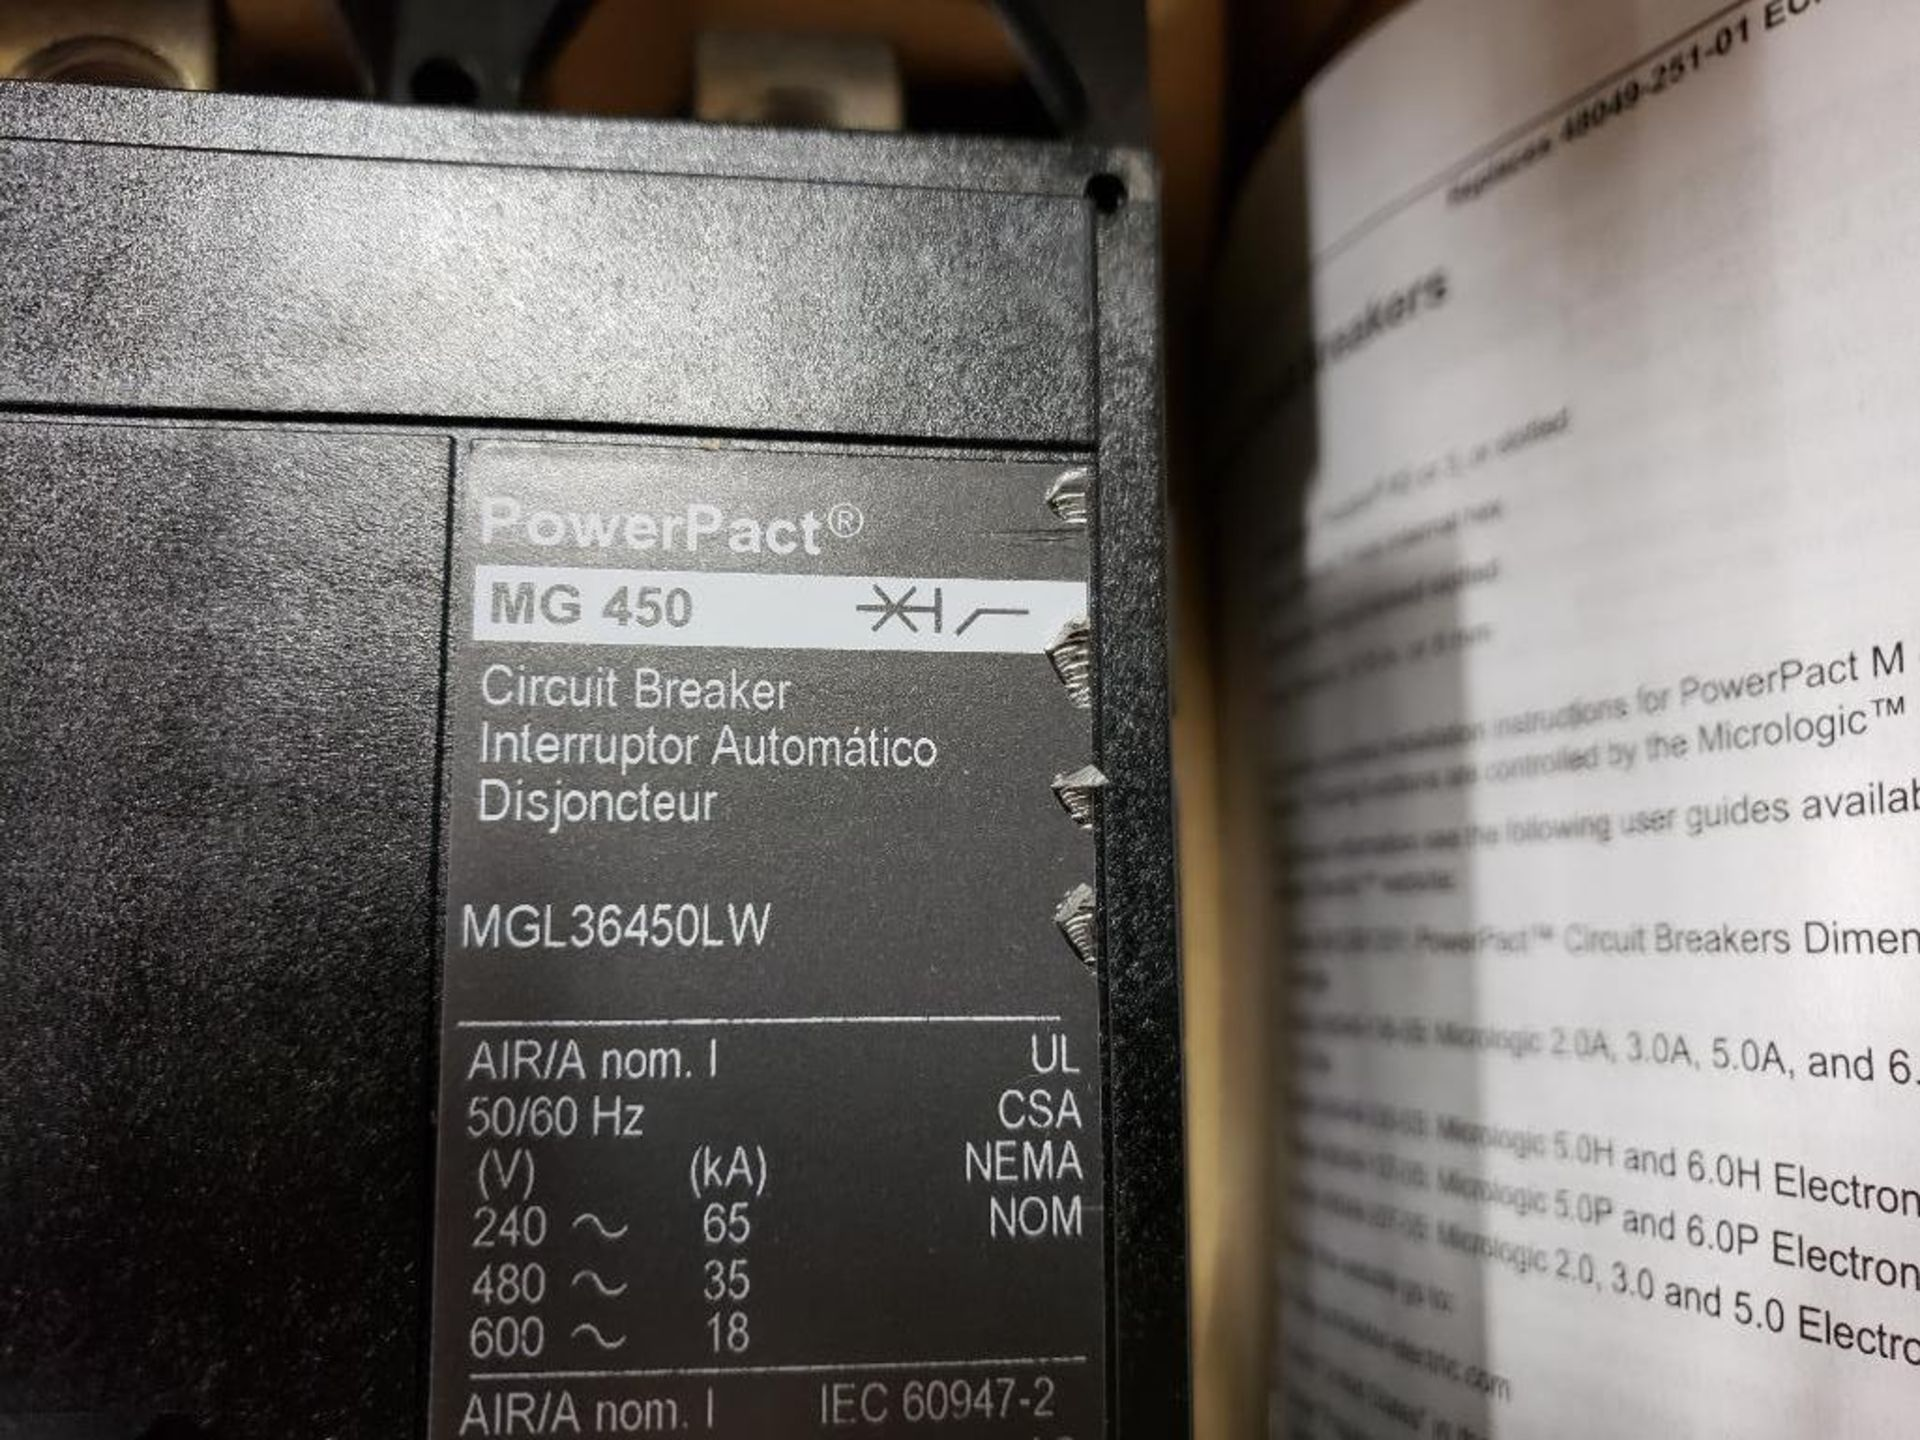 Square D PowerPact breaker. 450 amp 3 phase. Model MGL36450LW. New in box. - Image 3 of 5